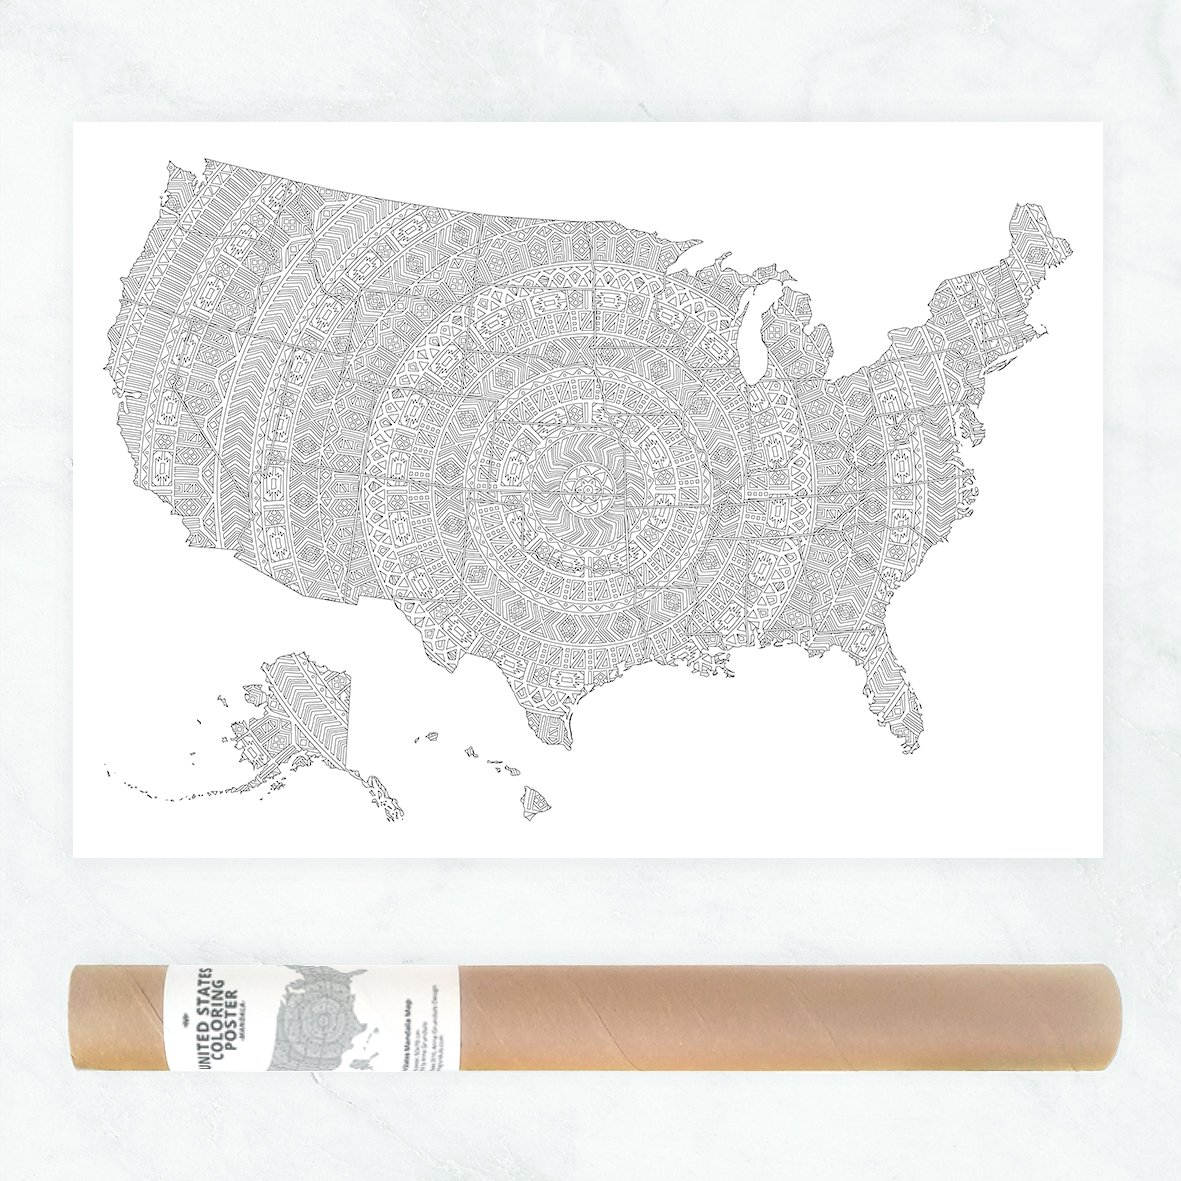 Amazon.com: Very Detailed Mandala US Coloring Map to Color In ...